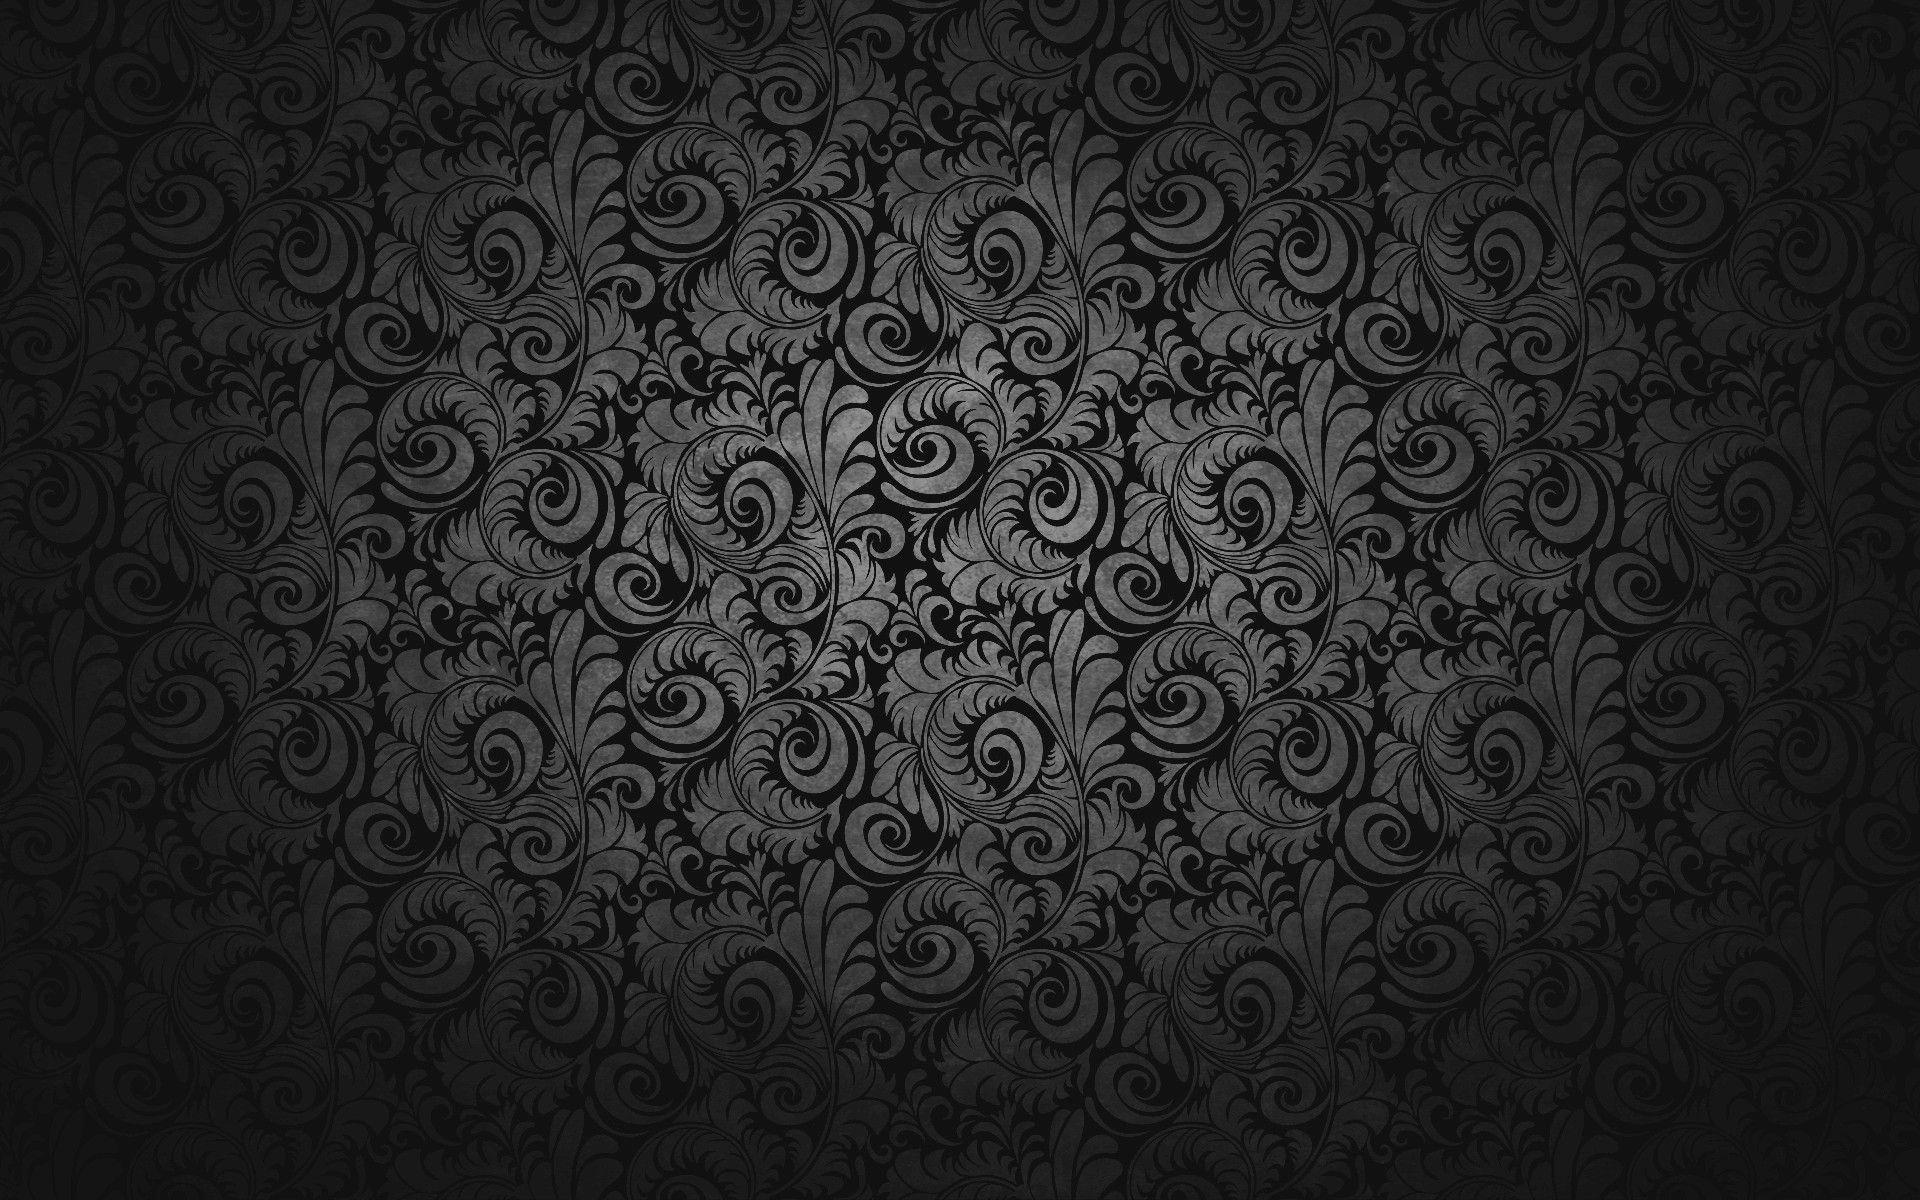 Gothic Design Wallpaper : Abstract pattern wallpapers wallpaper cave